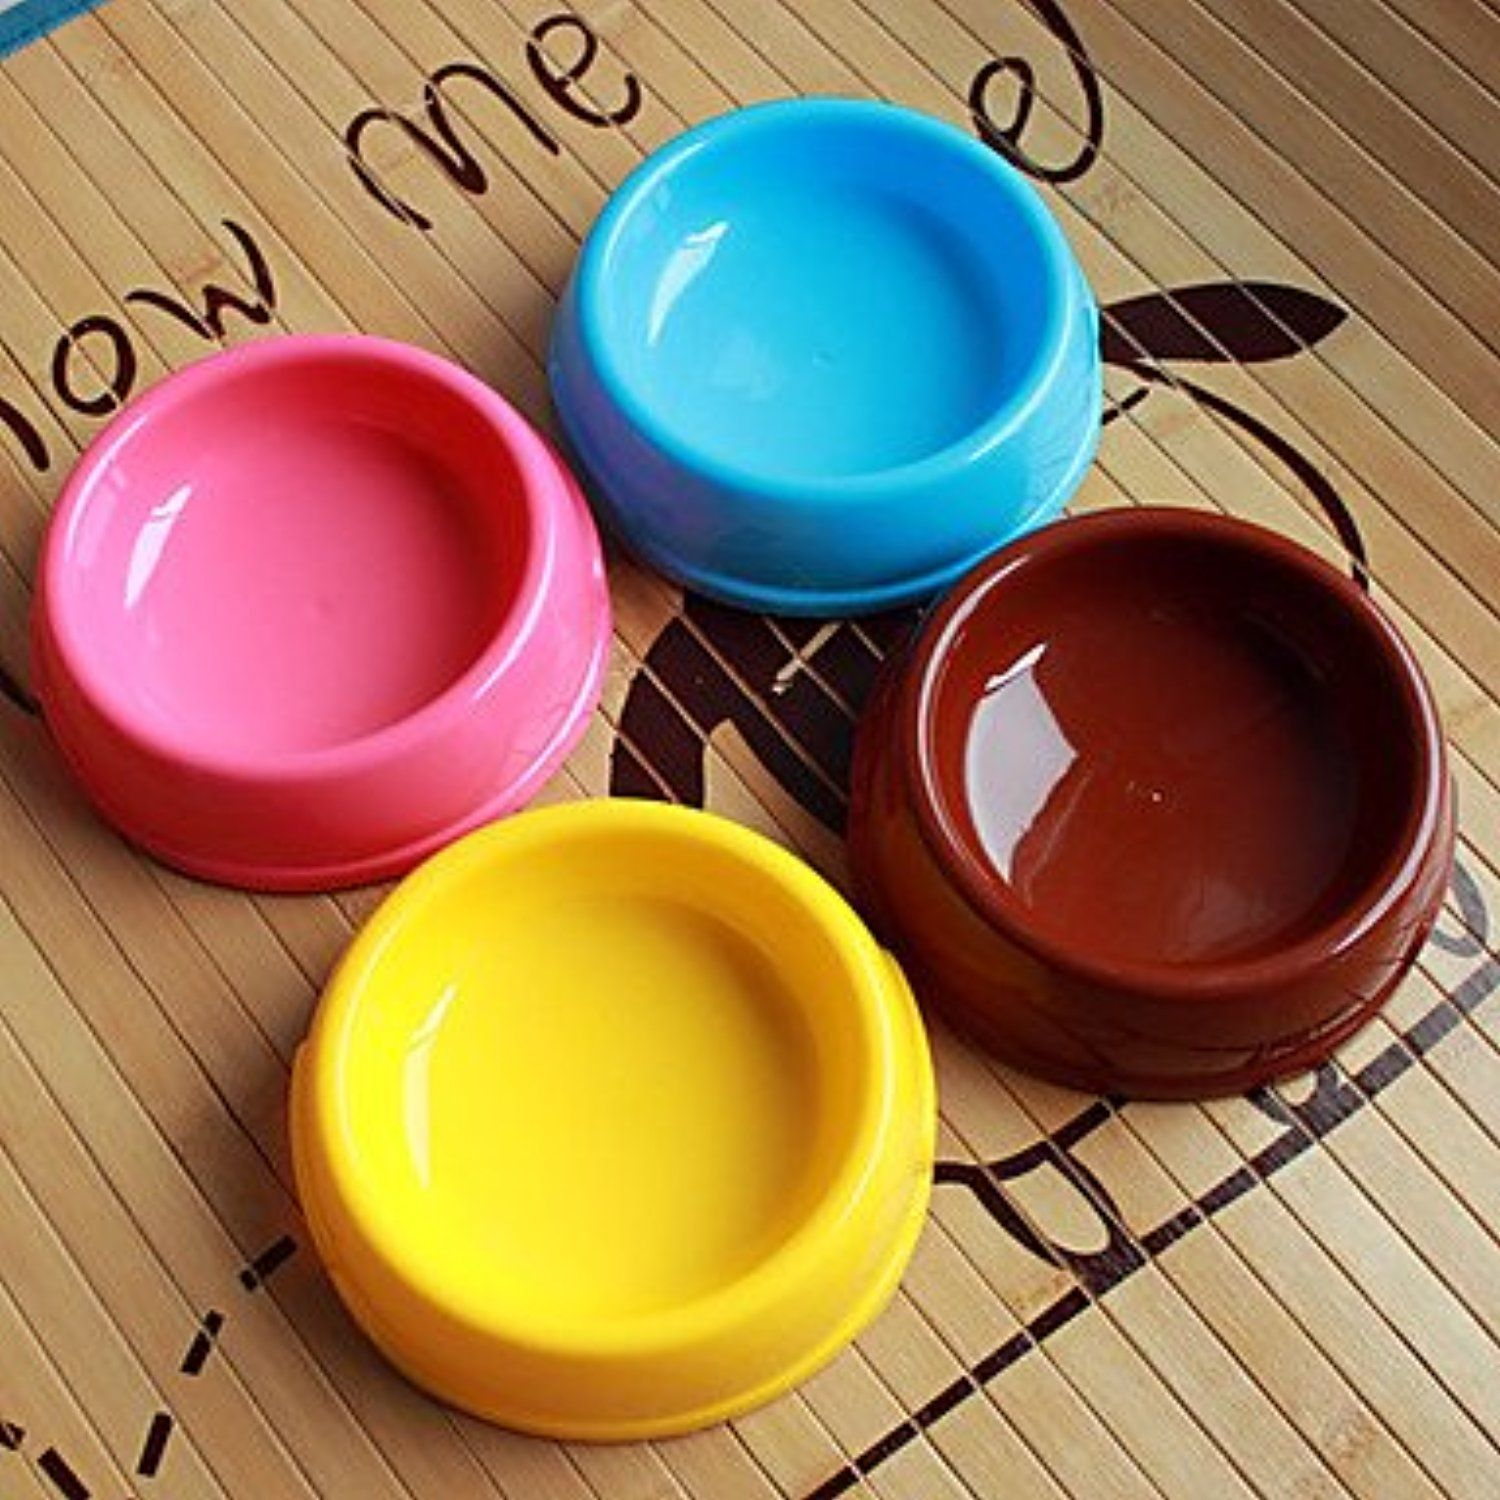 QINF Circle Shape Plastic Food Bowl for Dogs Cats